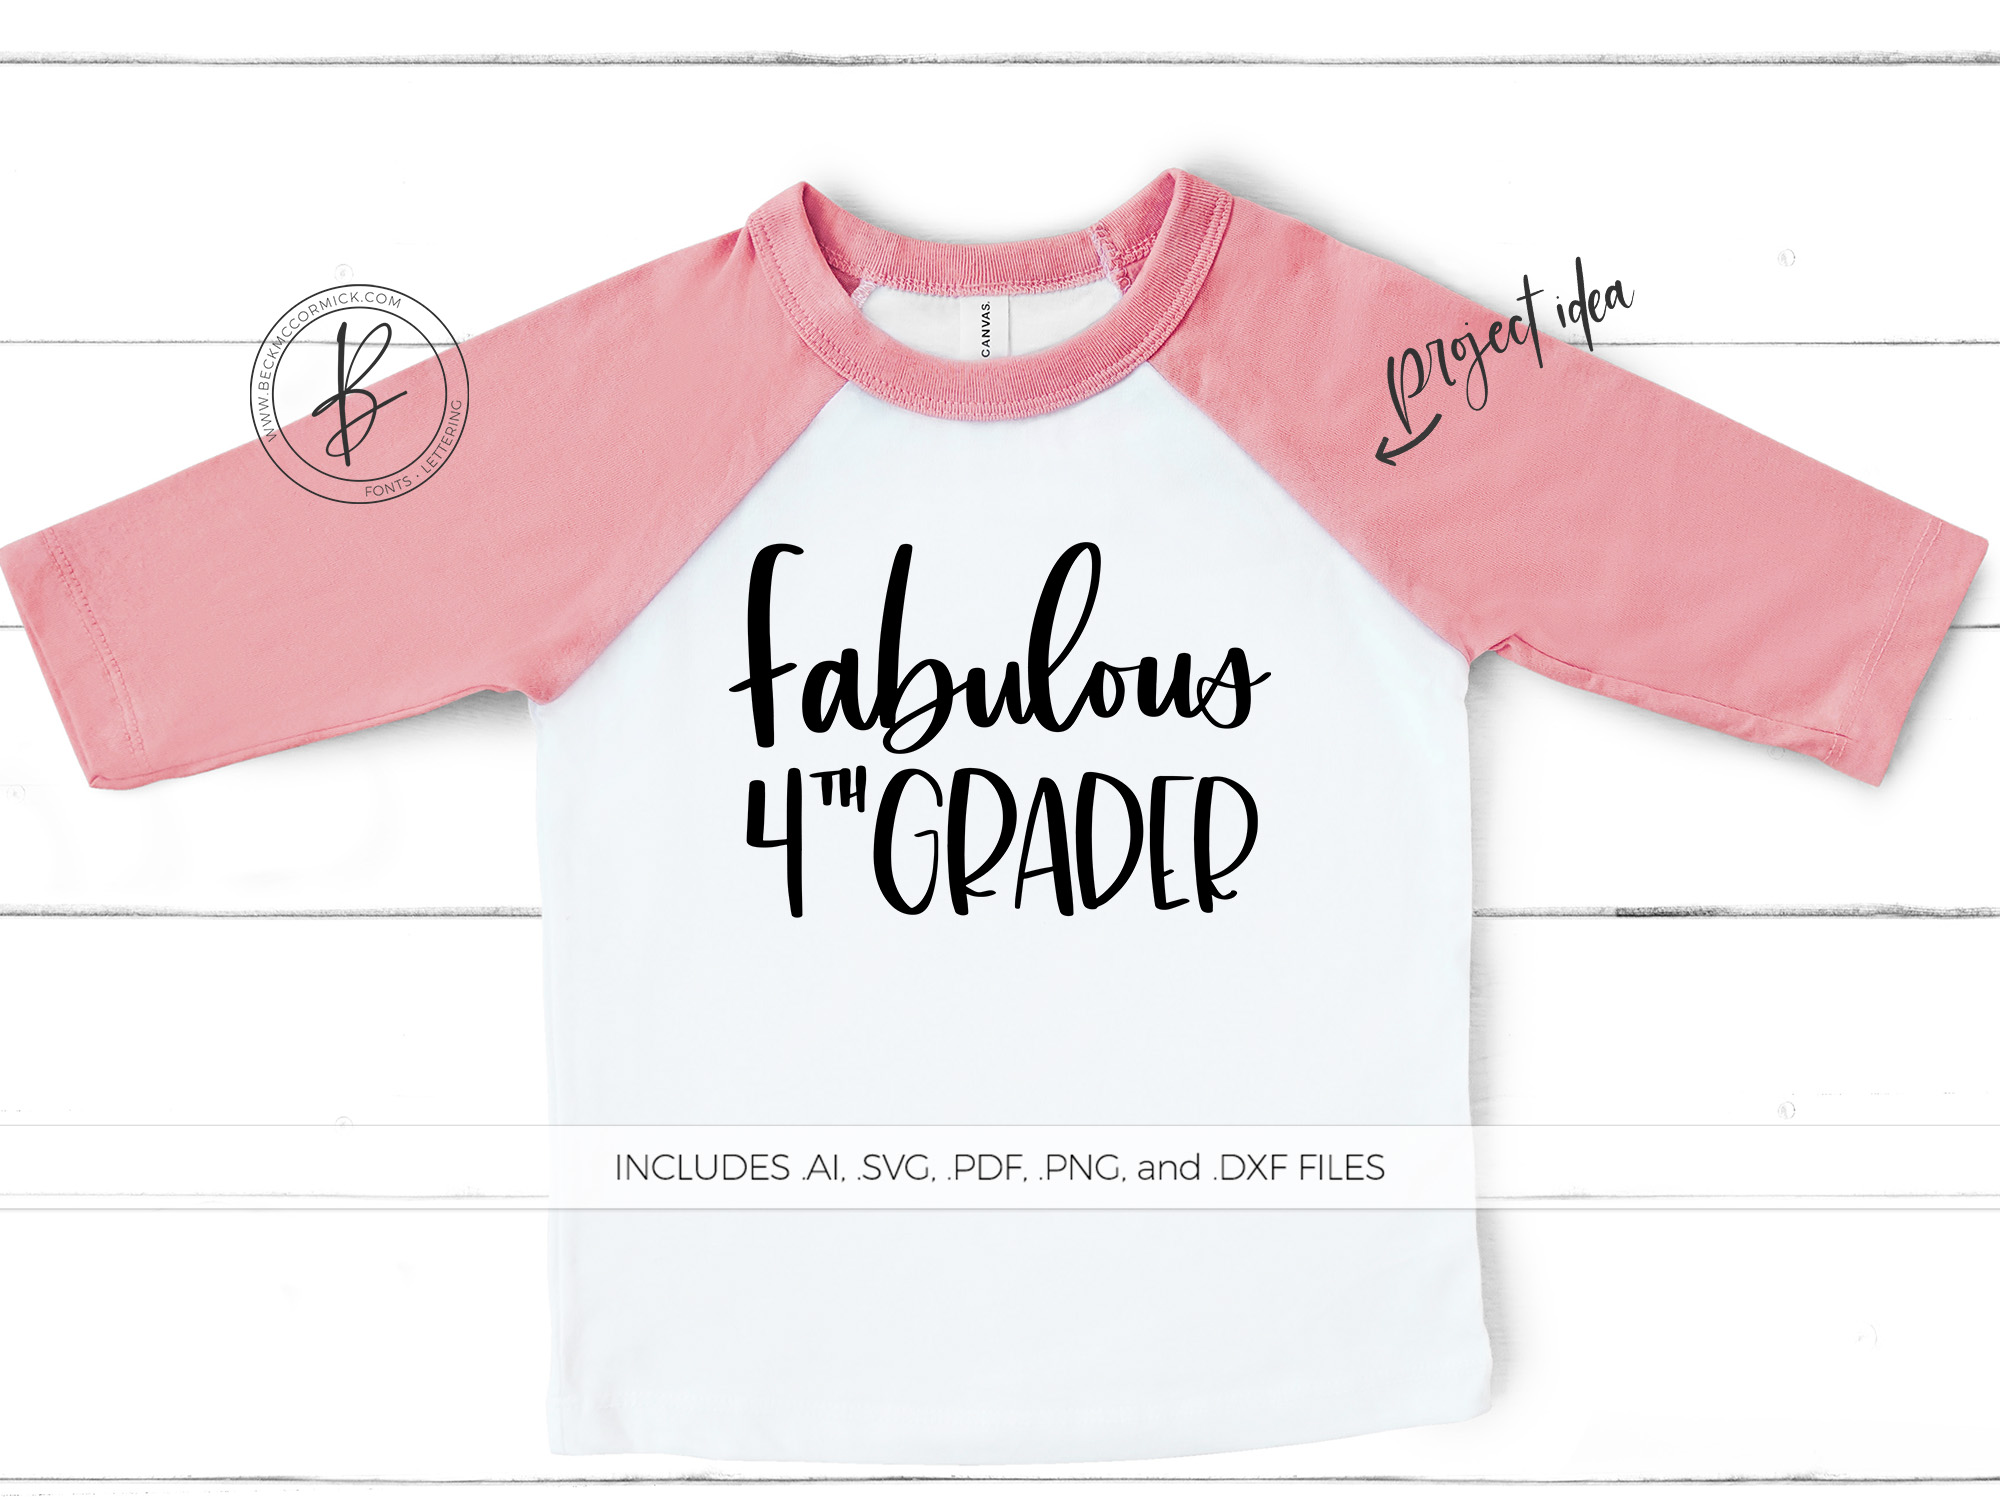 Download Free Fabulous Fourth Grader Graphic By Beckmccormick Creative Fabrica for Cricut Explore, Silhouette and other cutting machines.